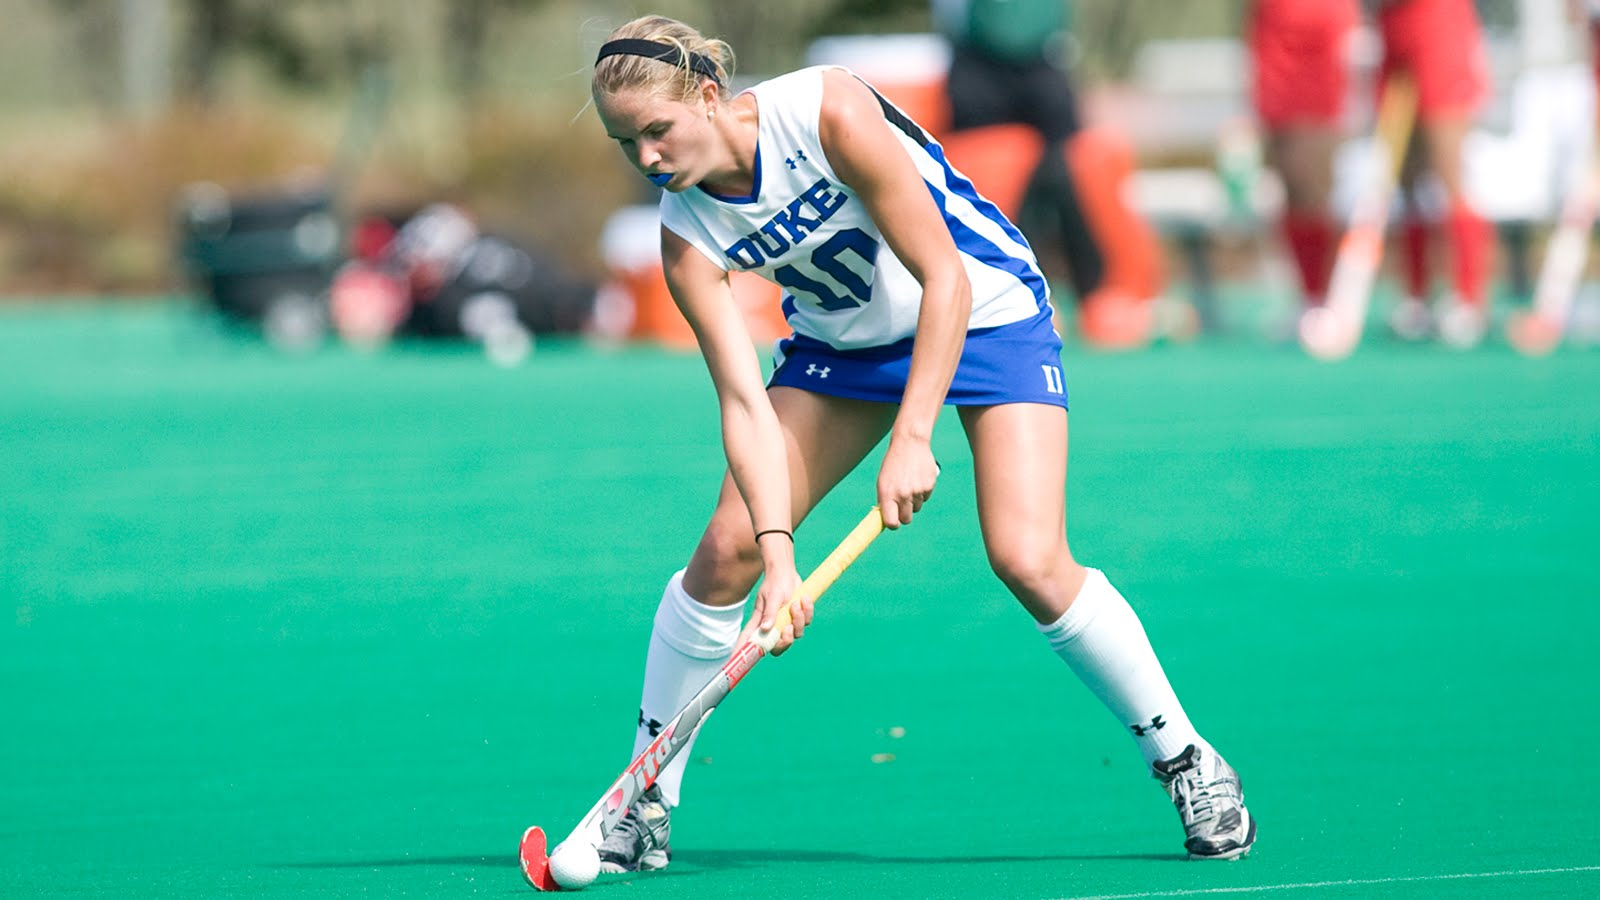 essays about field hockey Field hockey is an organized team sport and a lot of fun to play it's different from ice hockey or roller hockey it's played with 11 players on a side, including a goalie.